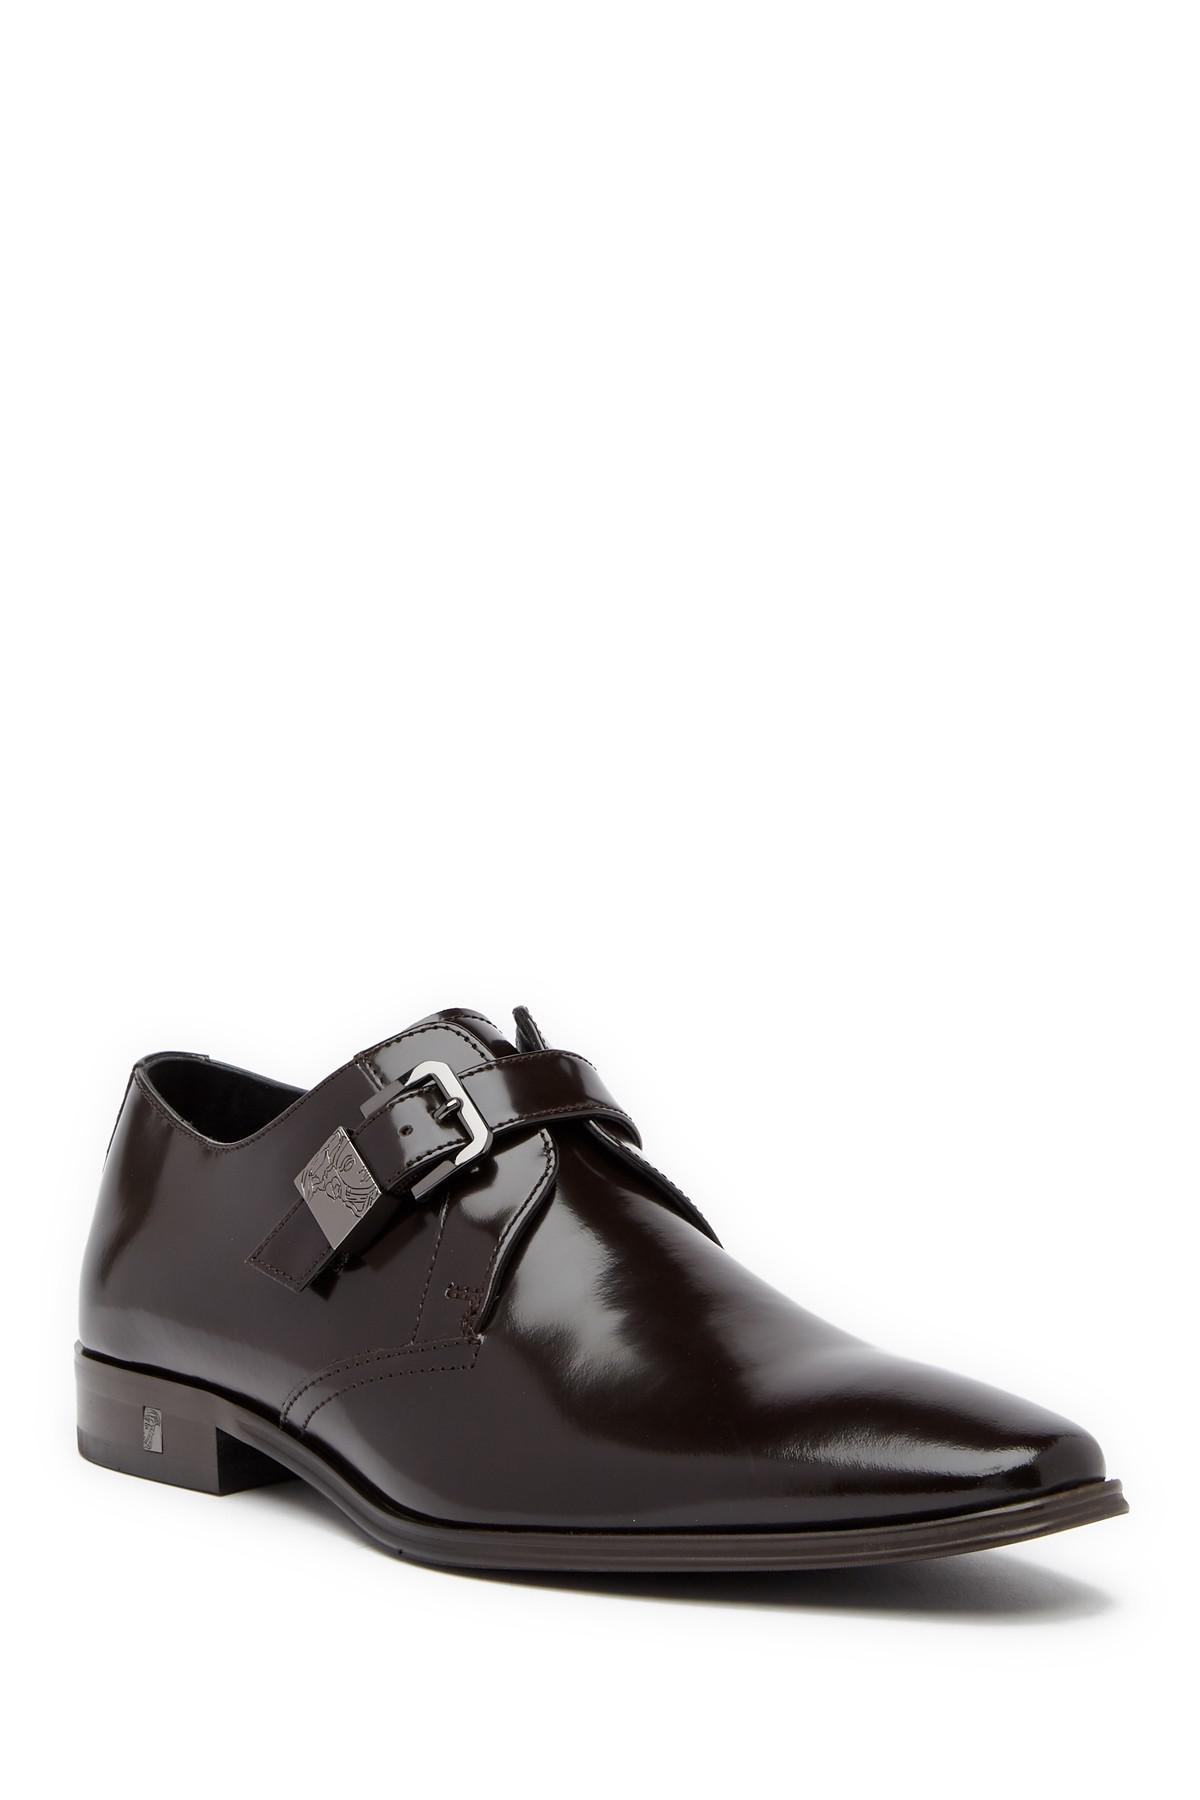 9ef1151a66b Versace Collection Buckle Leather Loafer in Black for Men - Lyst